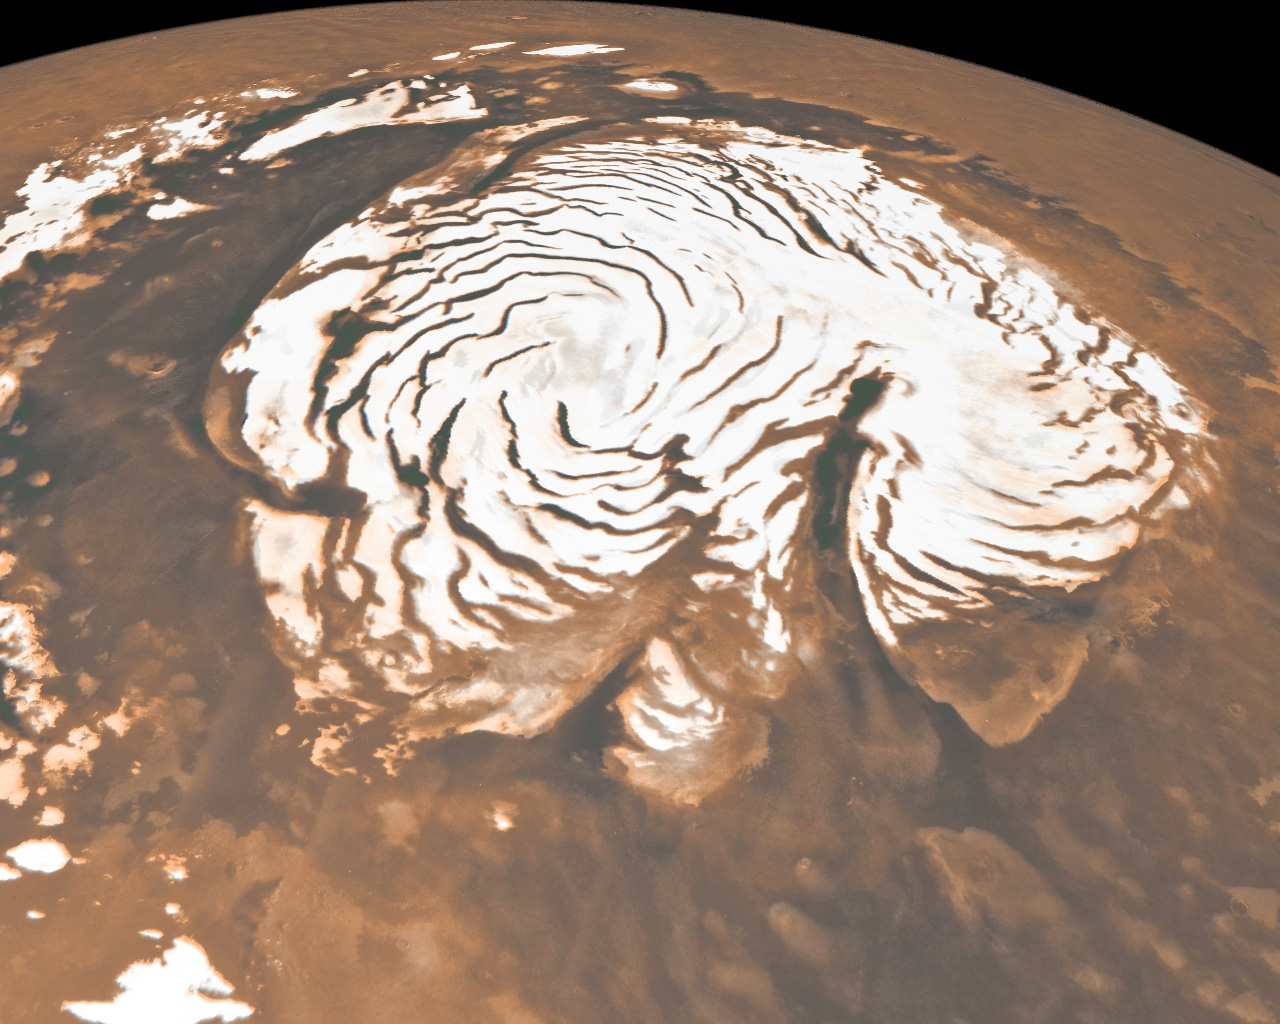 but a new discovery of water near the equator could affect future human missions to the Red Planet.